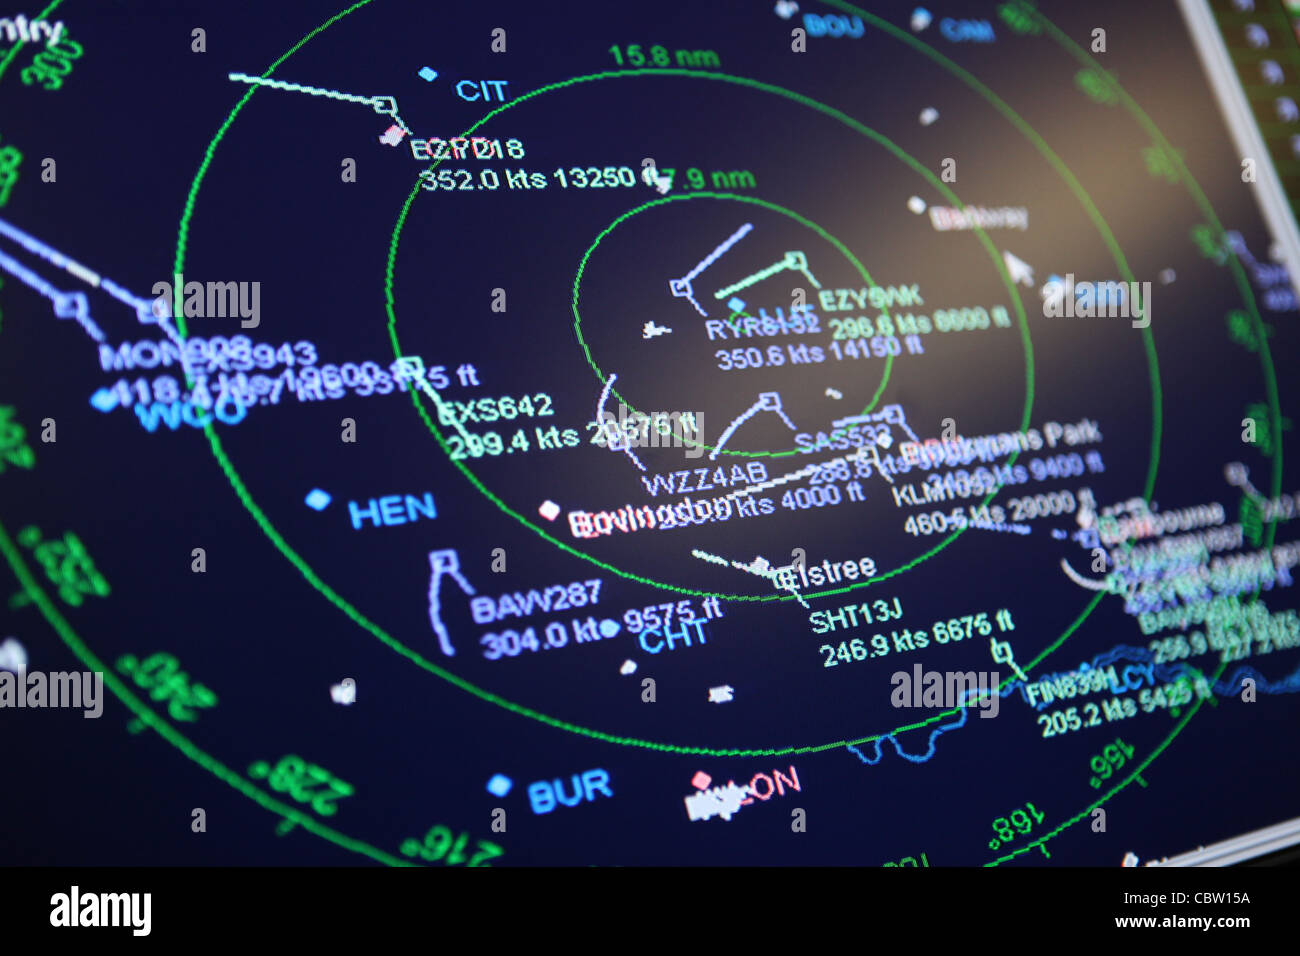 Air traffic control radar screen of aircraft above Luton airport, UK - Stock Image